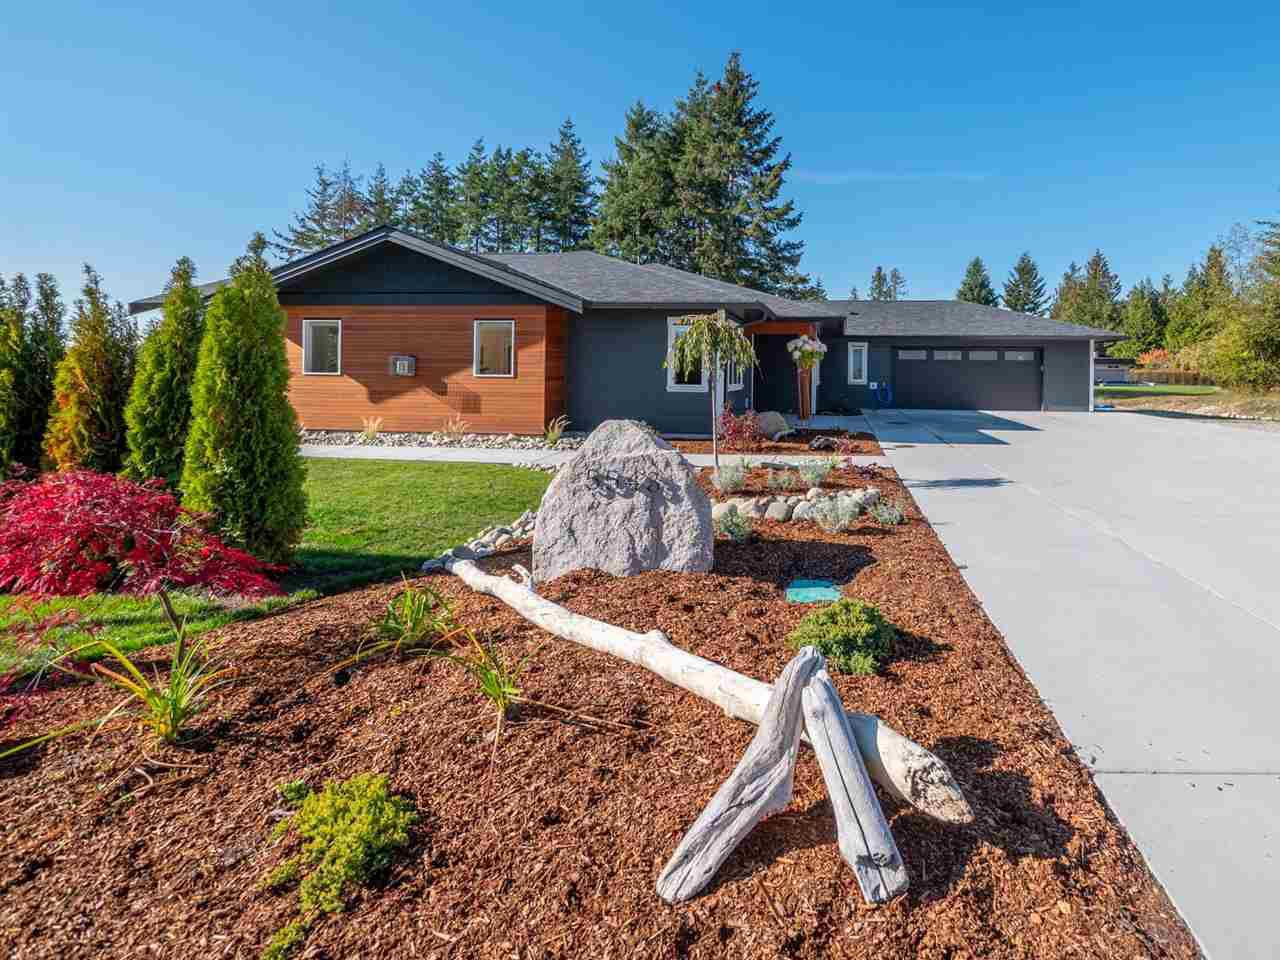 Main Photo: 5543 GRANITE Road in Sechelt: Sechelt District House for sale (Sunshine Coast)  : MLS®# R2316792